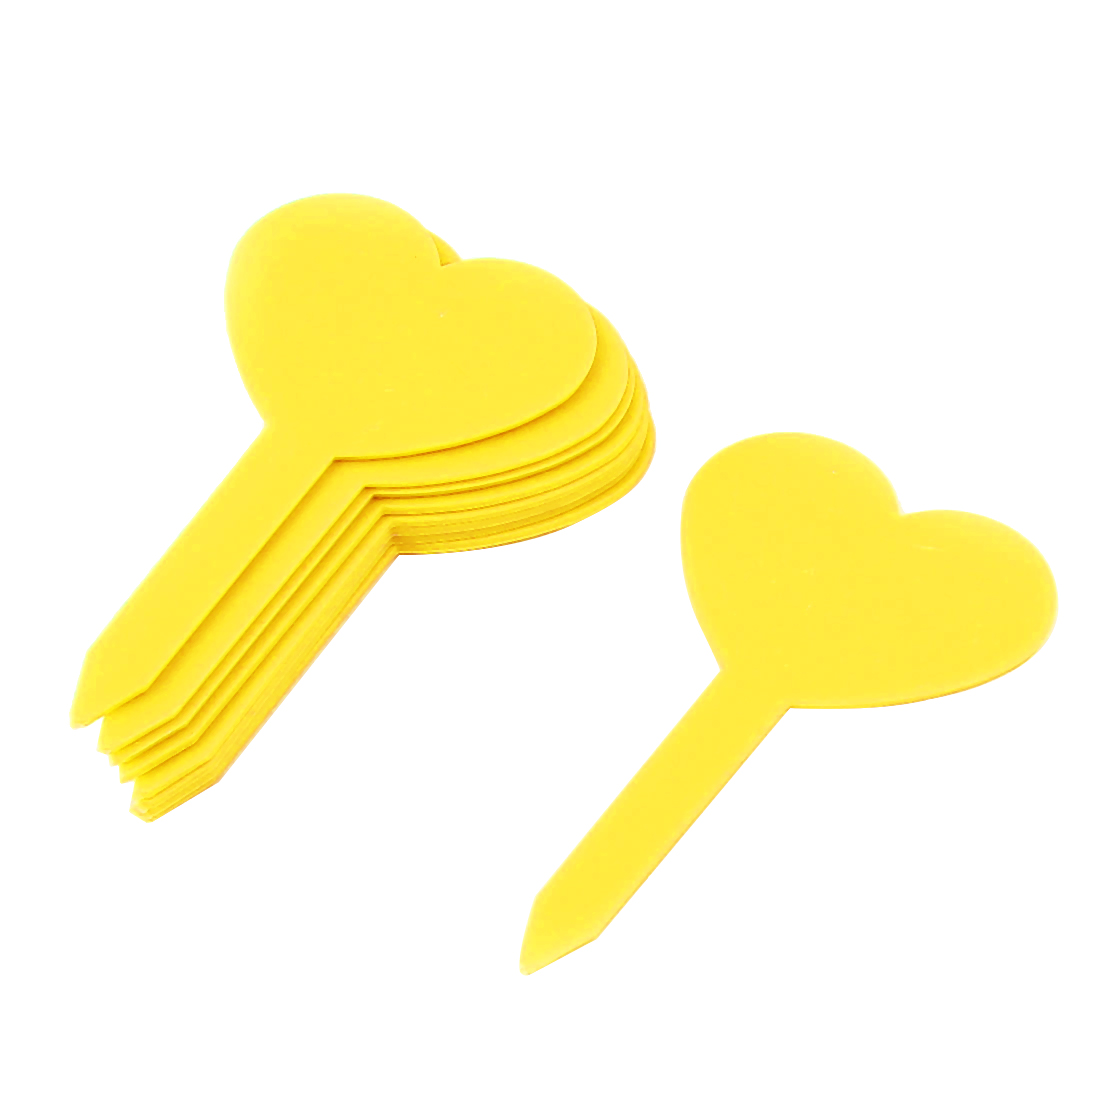 Plastic Heart Shape Nursery Garden Plant Seed Tag Label Marker Stick Yellow 10Pcs